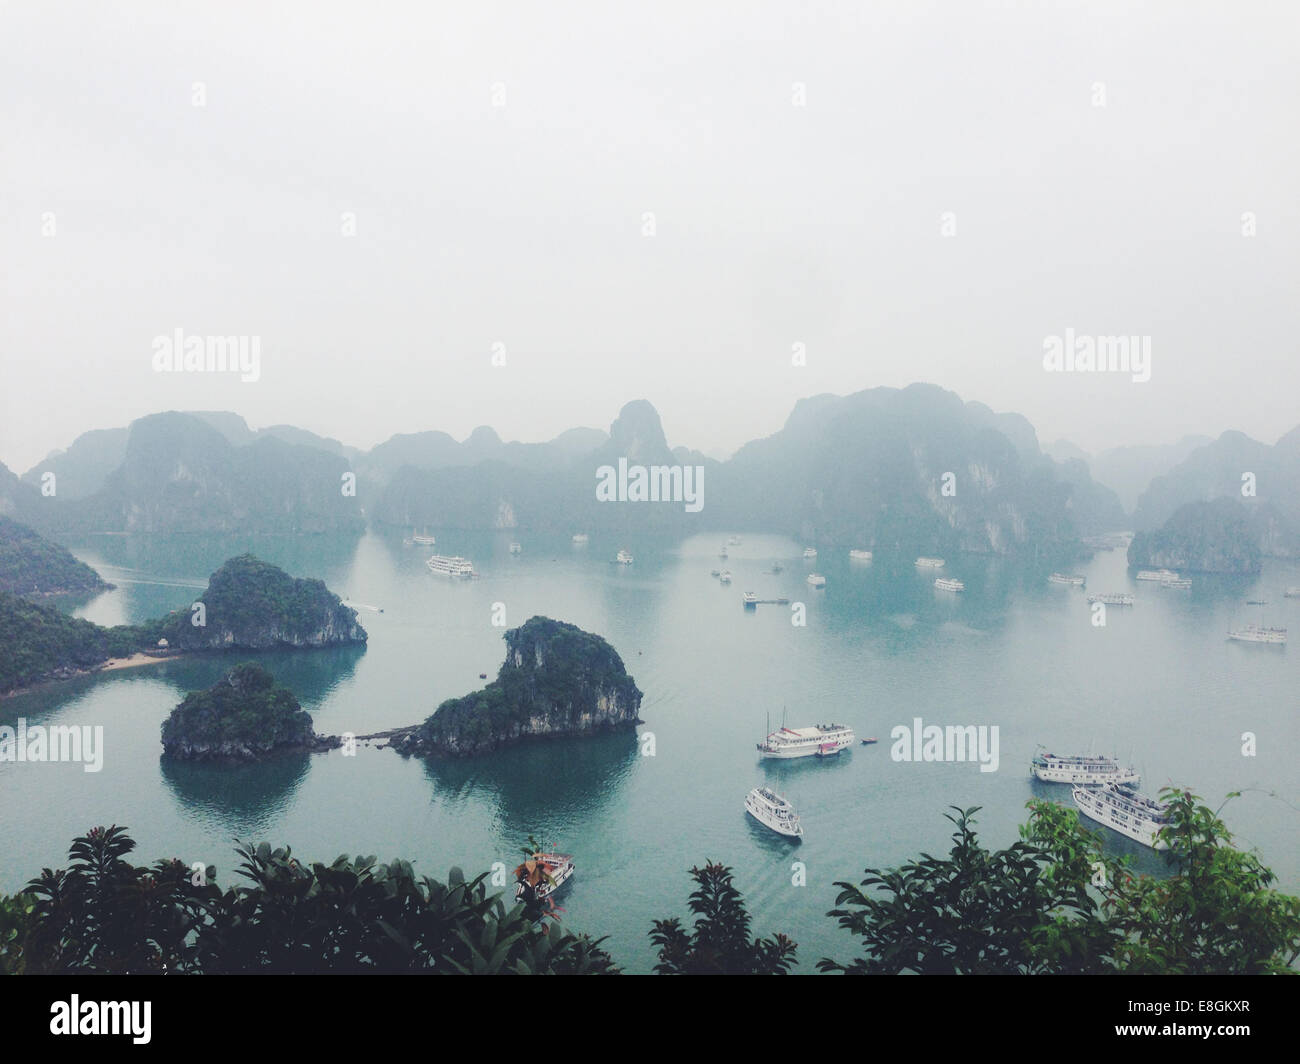 Vietnam, Quang Ninh Province, Halong, HaLong Bay, Elevated view of foggy bay - Stock Image